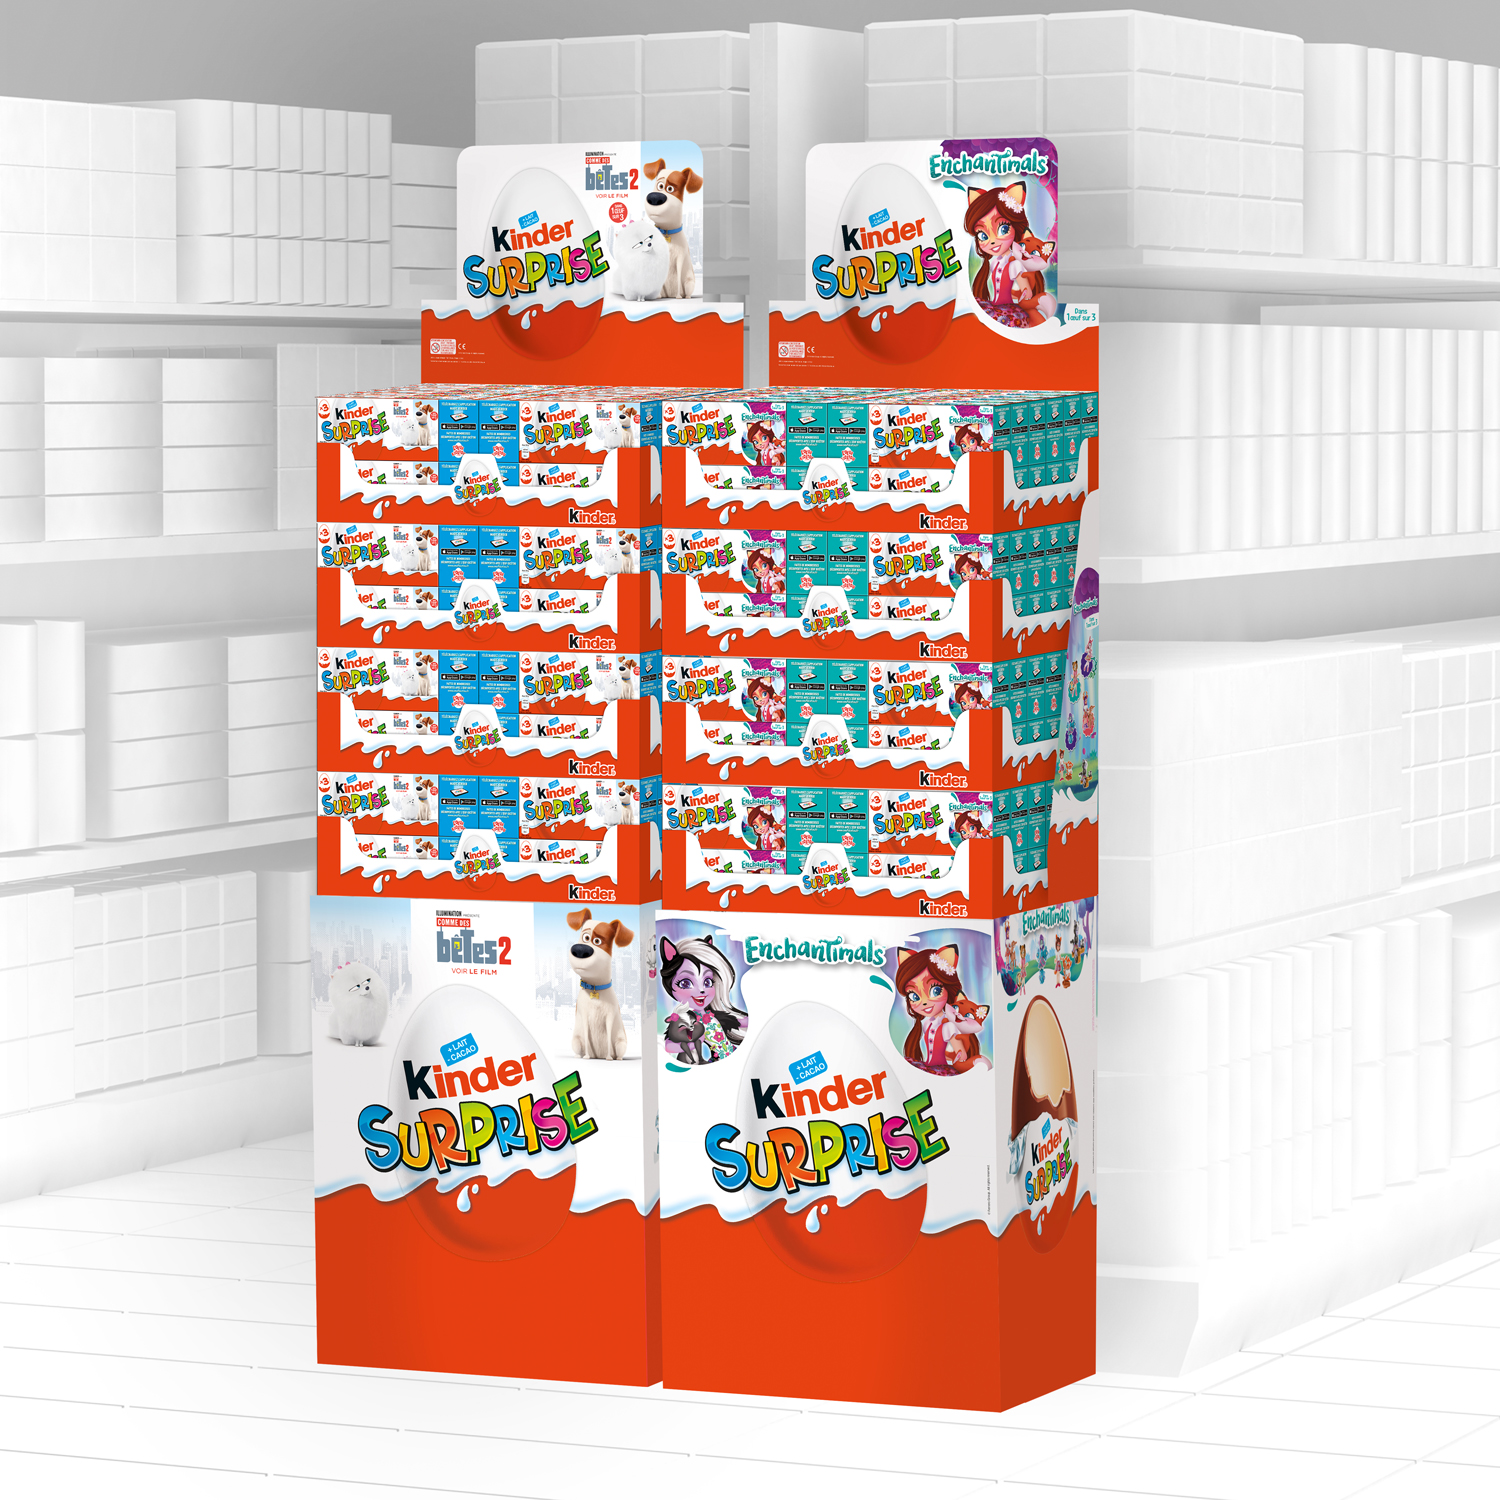 Displays Kinder surprises licence